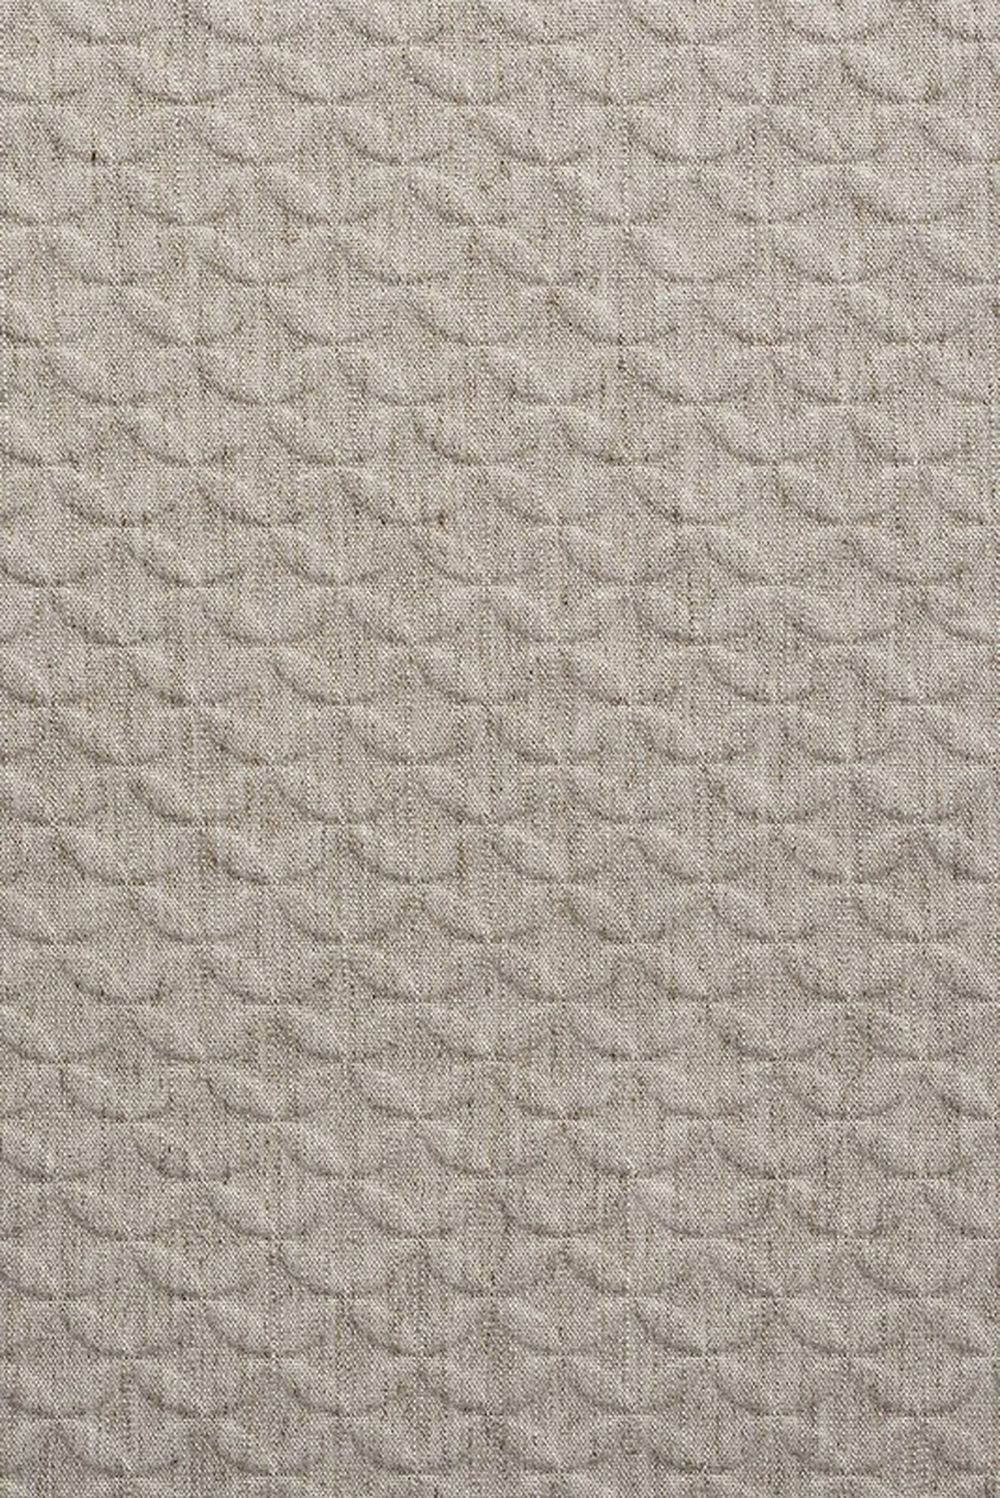 Photo of the fabric Topiary Linen swatch by Mokum. Use for Upholstery Heavy Duty, Accessory. Style of Geometric, Pattern